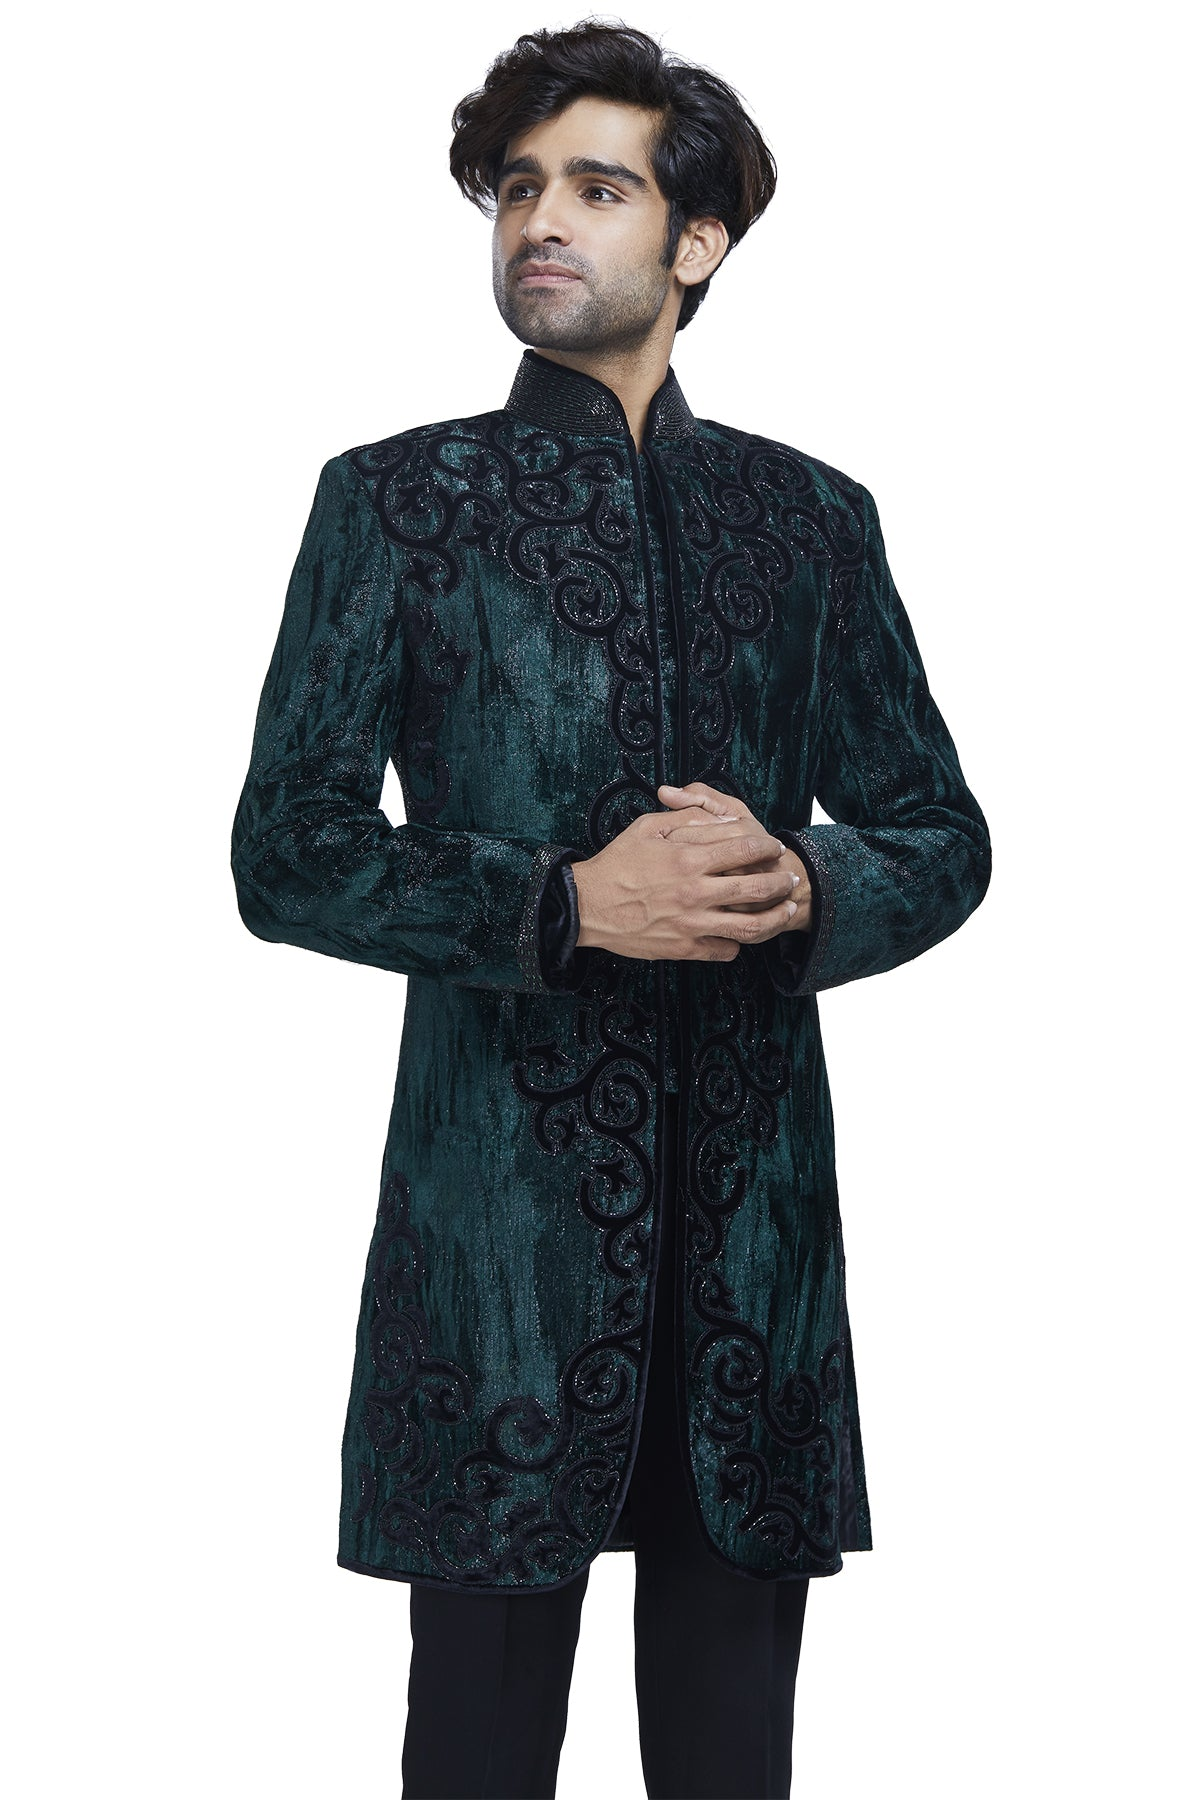 Bringing some dapper swag to any dull day is our green textured sherwani with black threadwork, kardana embroidery and black formal slim pants.